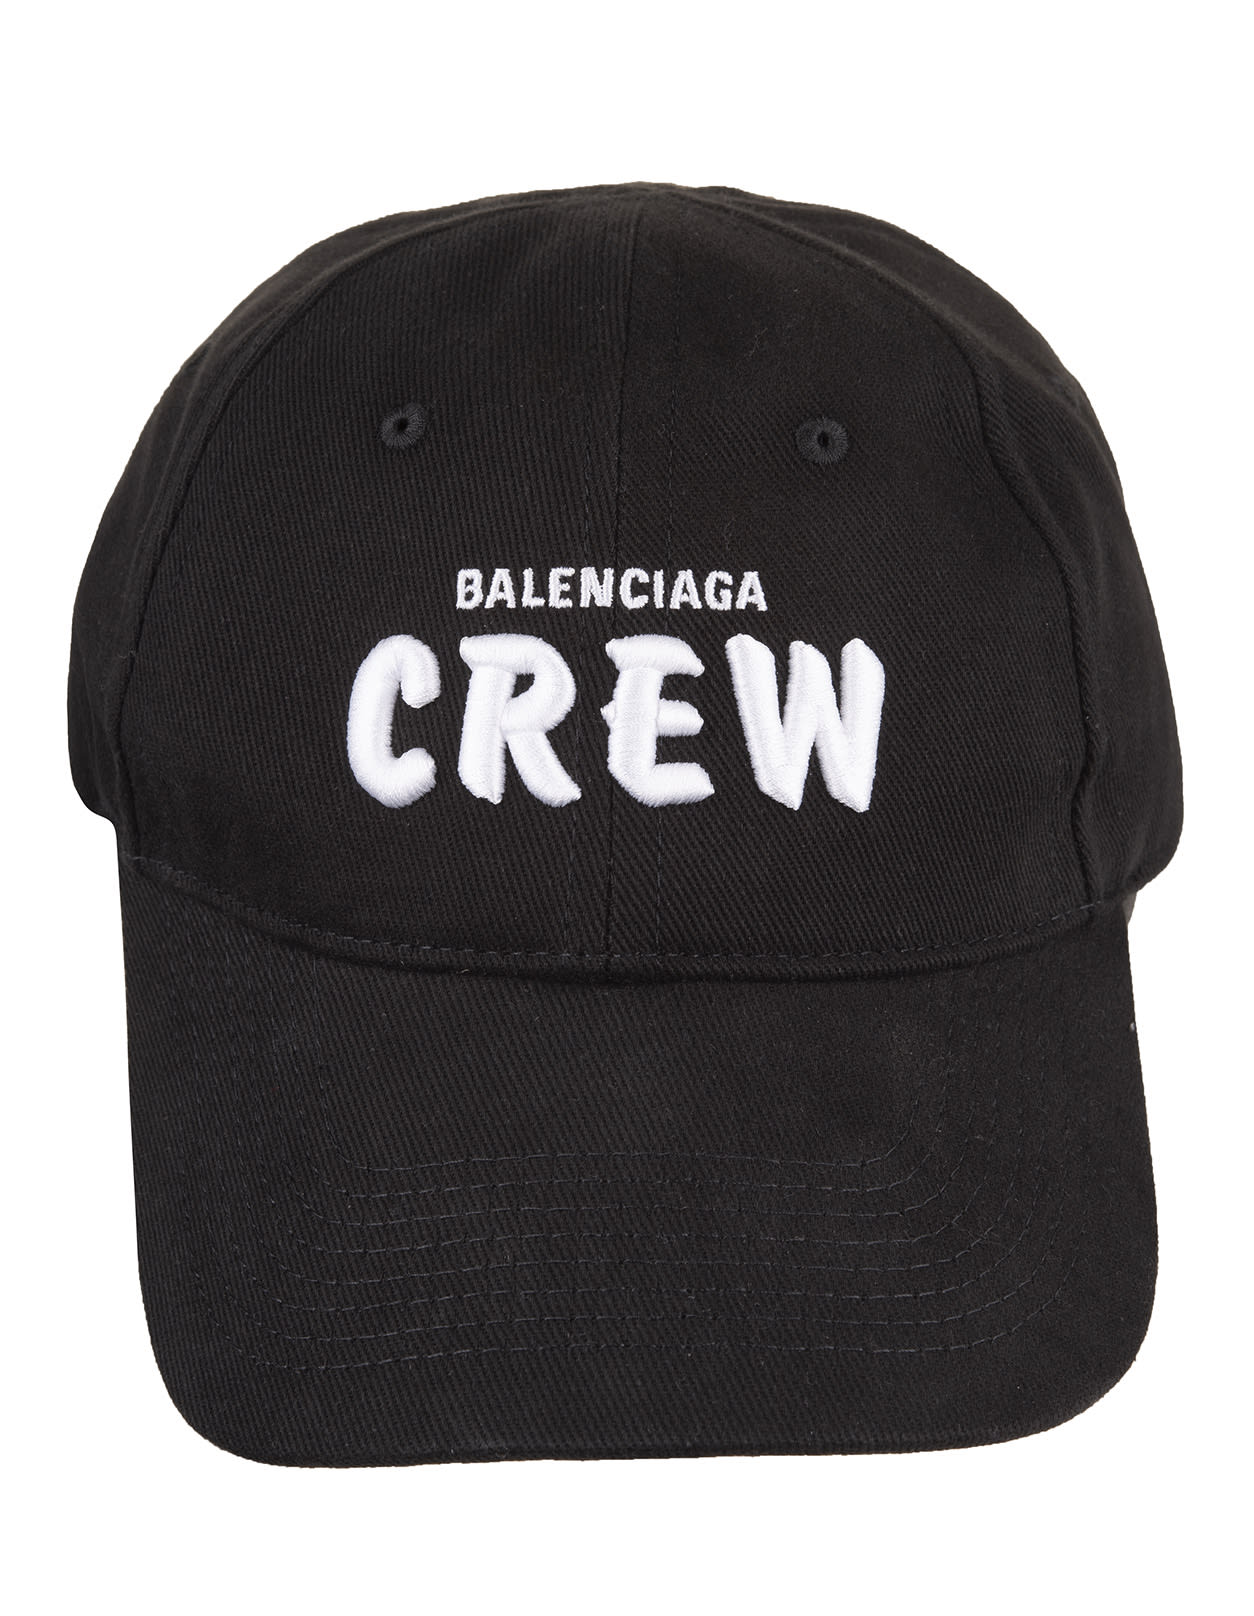 Black crew Man Baseball Cap